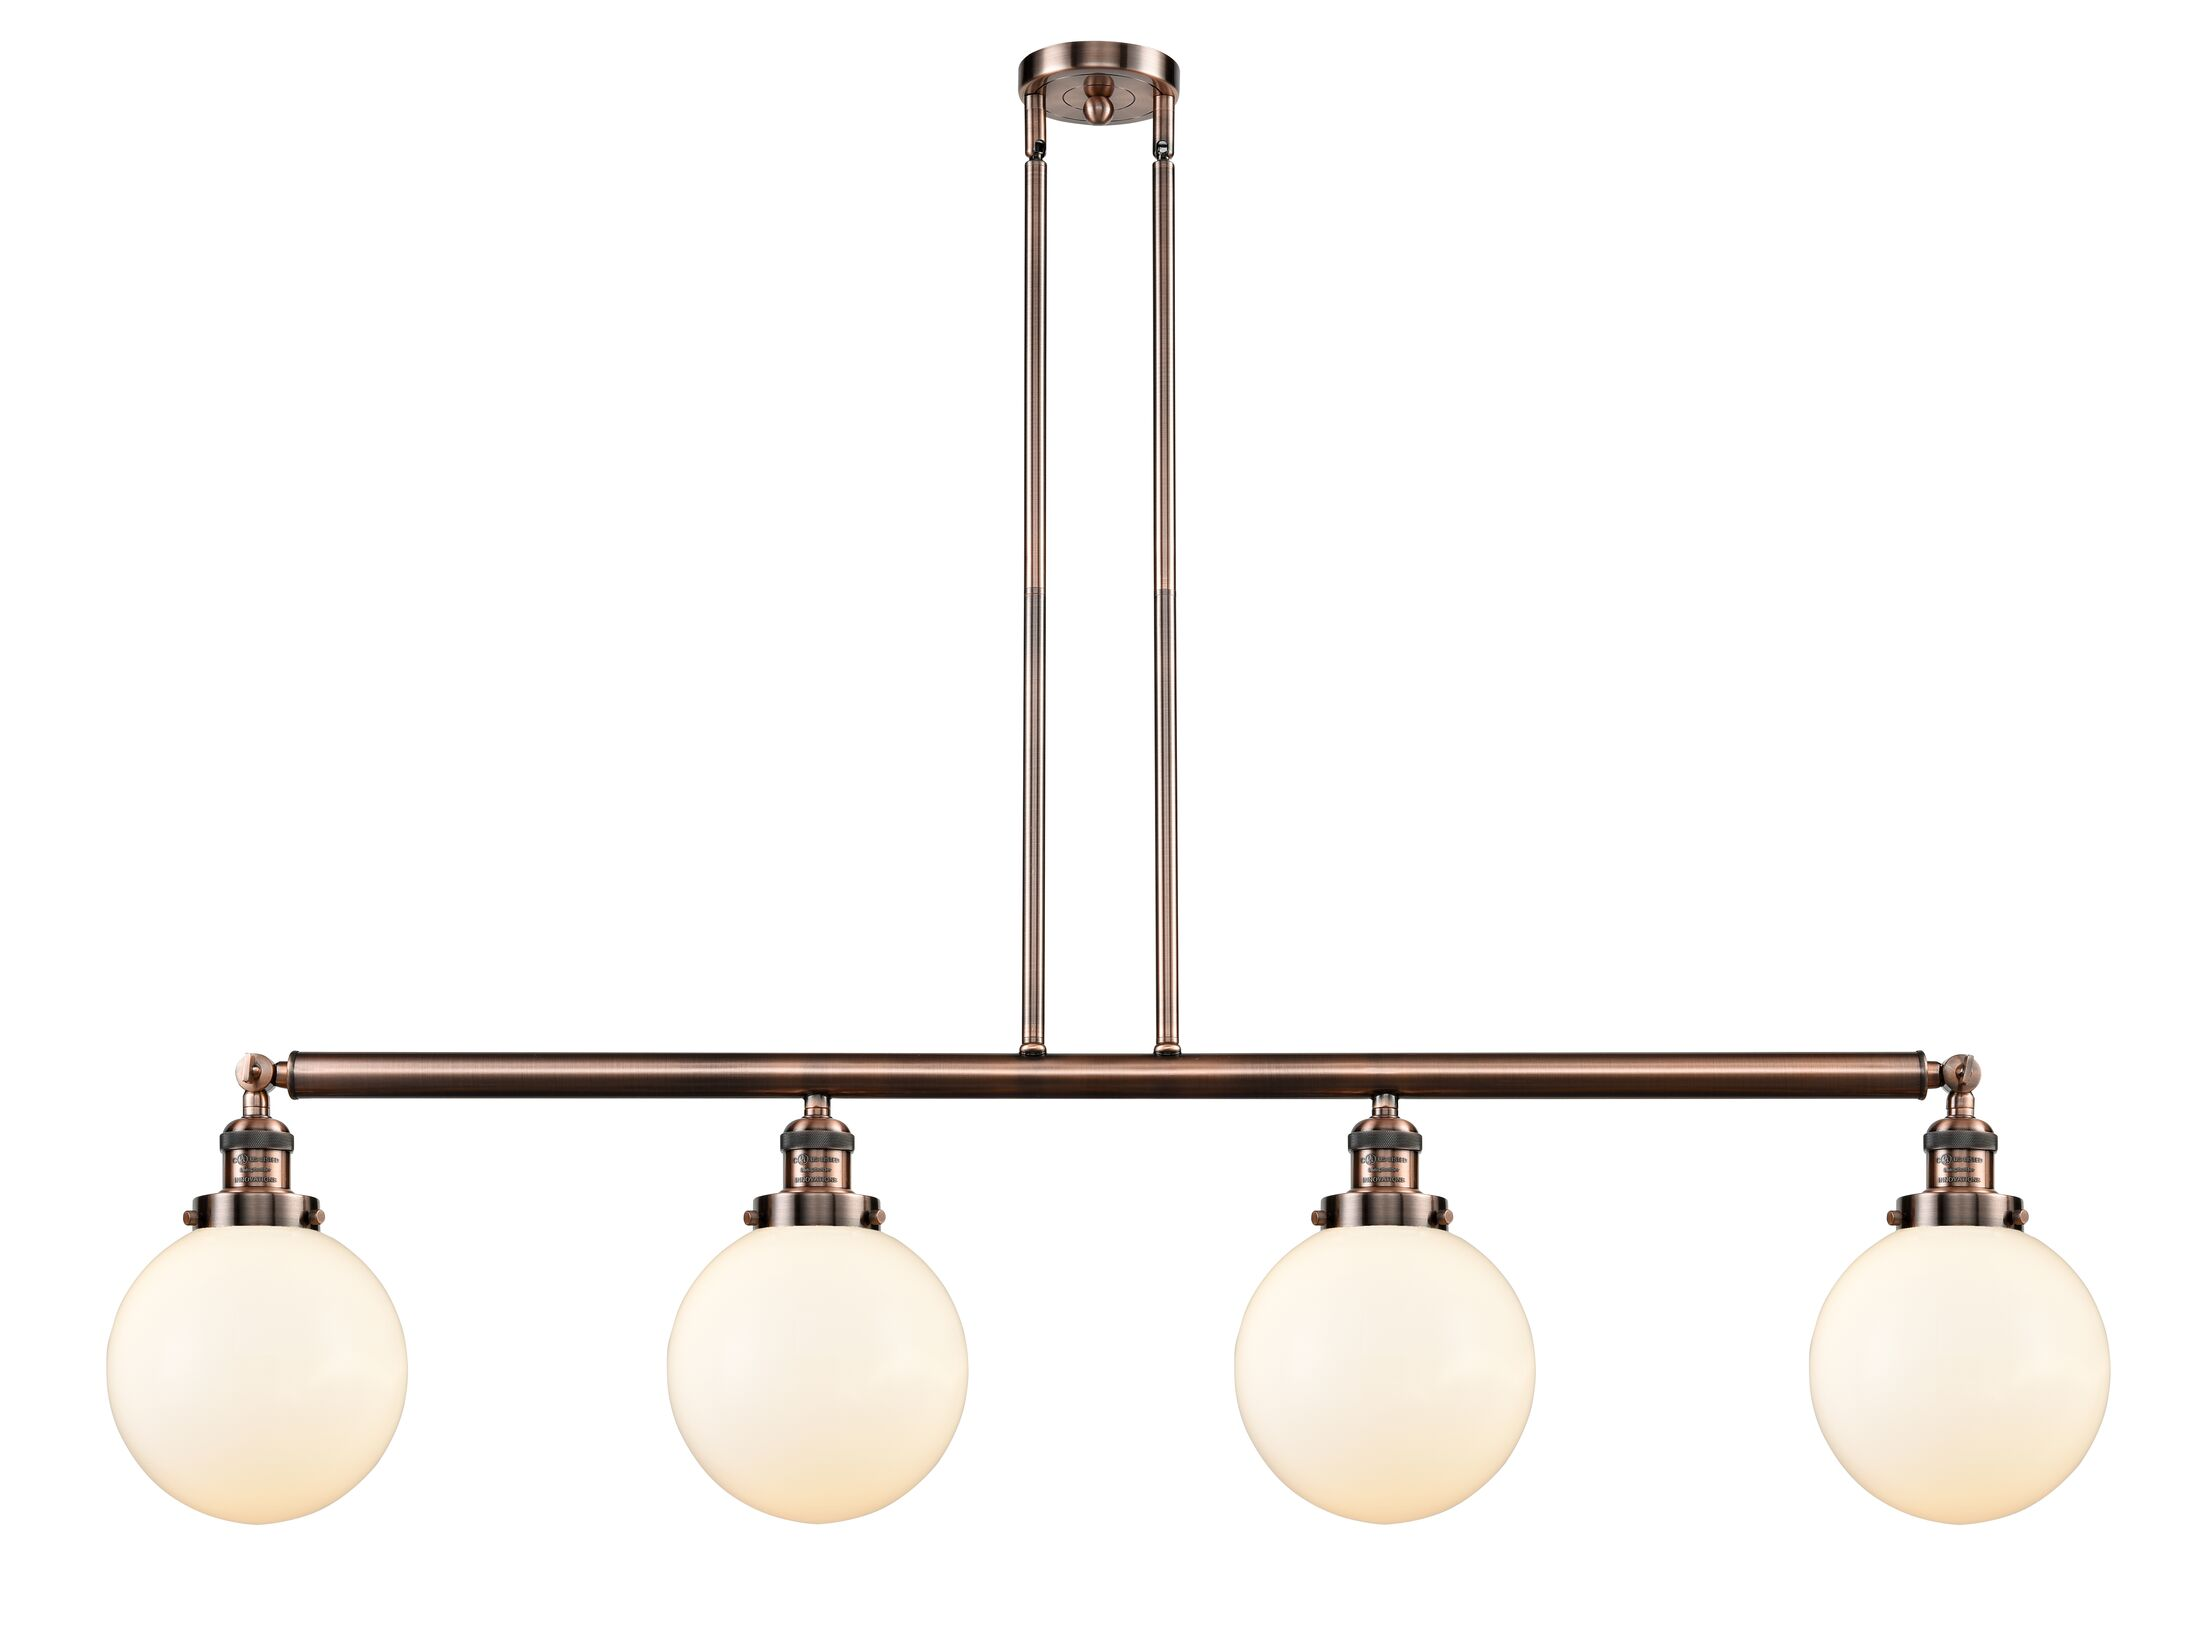 Jackeline 4-Light Kitchen Island Pendant Bulb Type: Incandescent, Shade Color: Seedy, Finish: Oil Rubbed Bronze